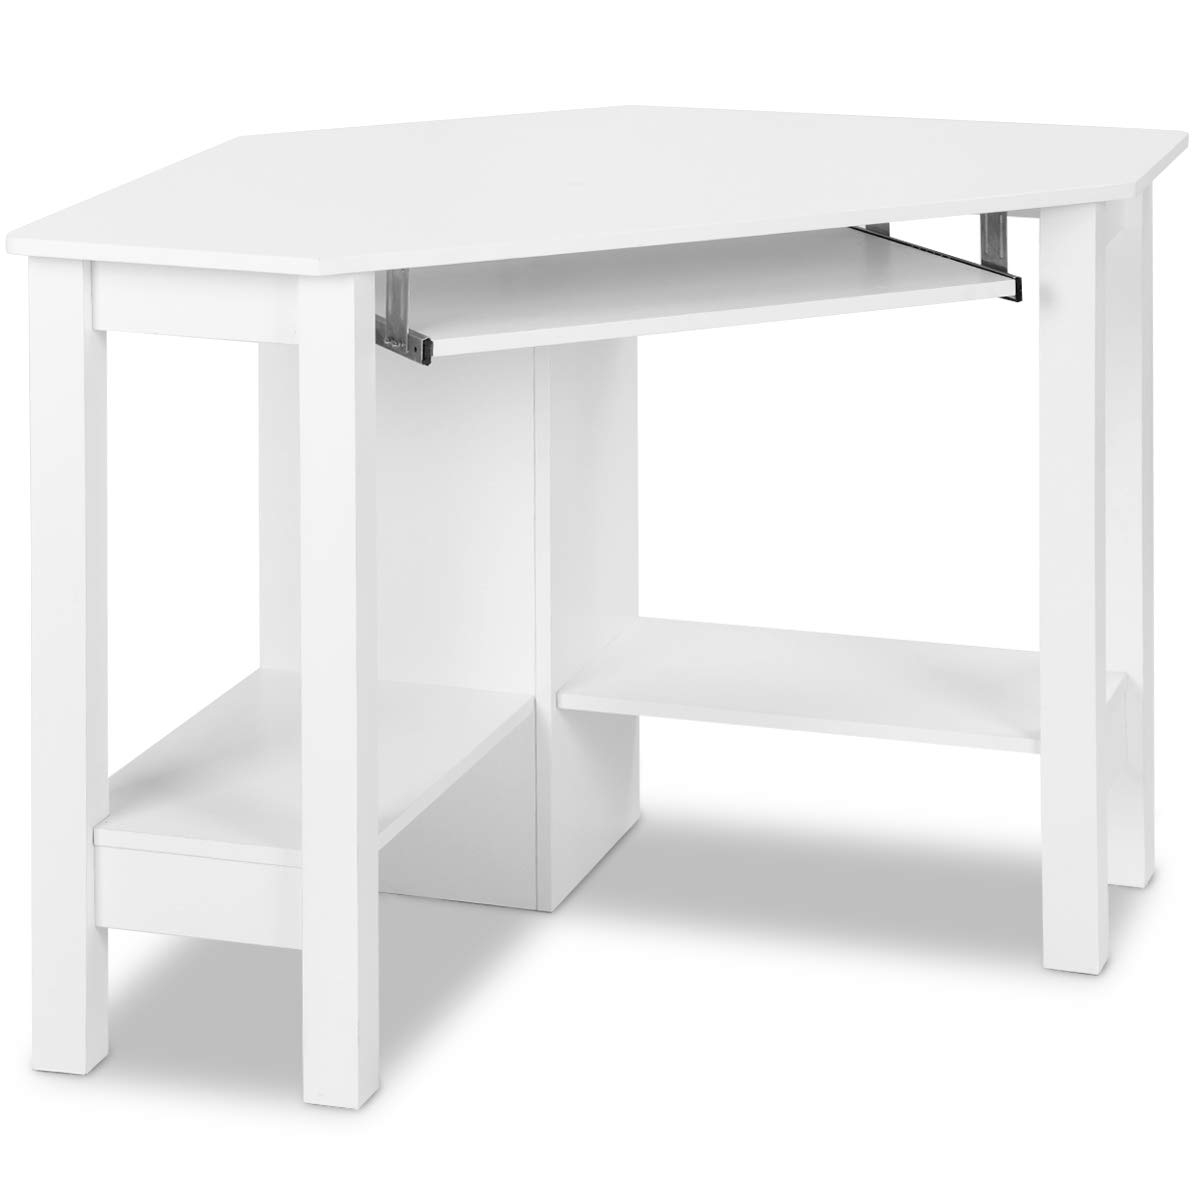 Tangkula Corner Desk Corner Computer Desk Wood Compact Home Office Desk Laptop PC Table Writing Study Table Workstation with Smooth Keyboard Tray & Storage Shelves